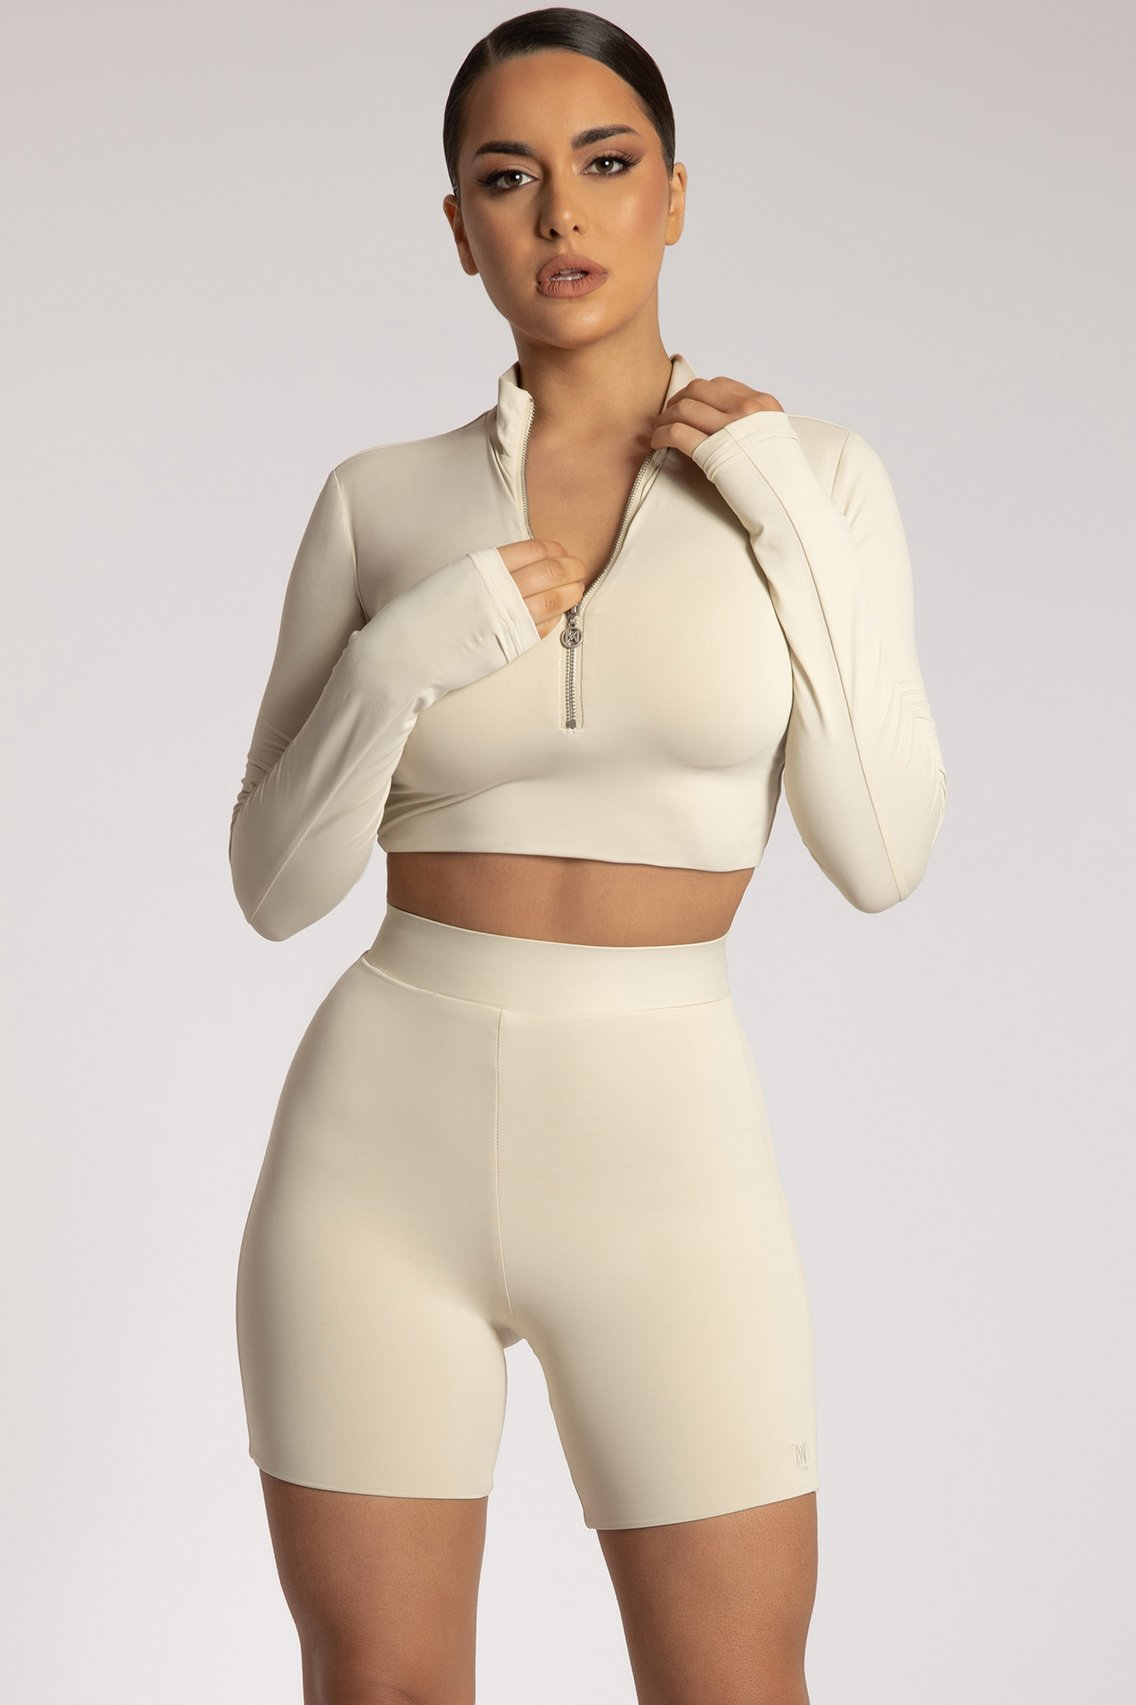 Ashlea Long Sleeve Zip Up Crop Top - Sand - MESHKI